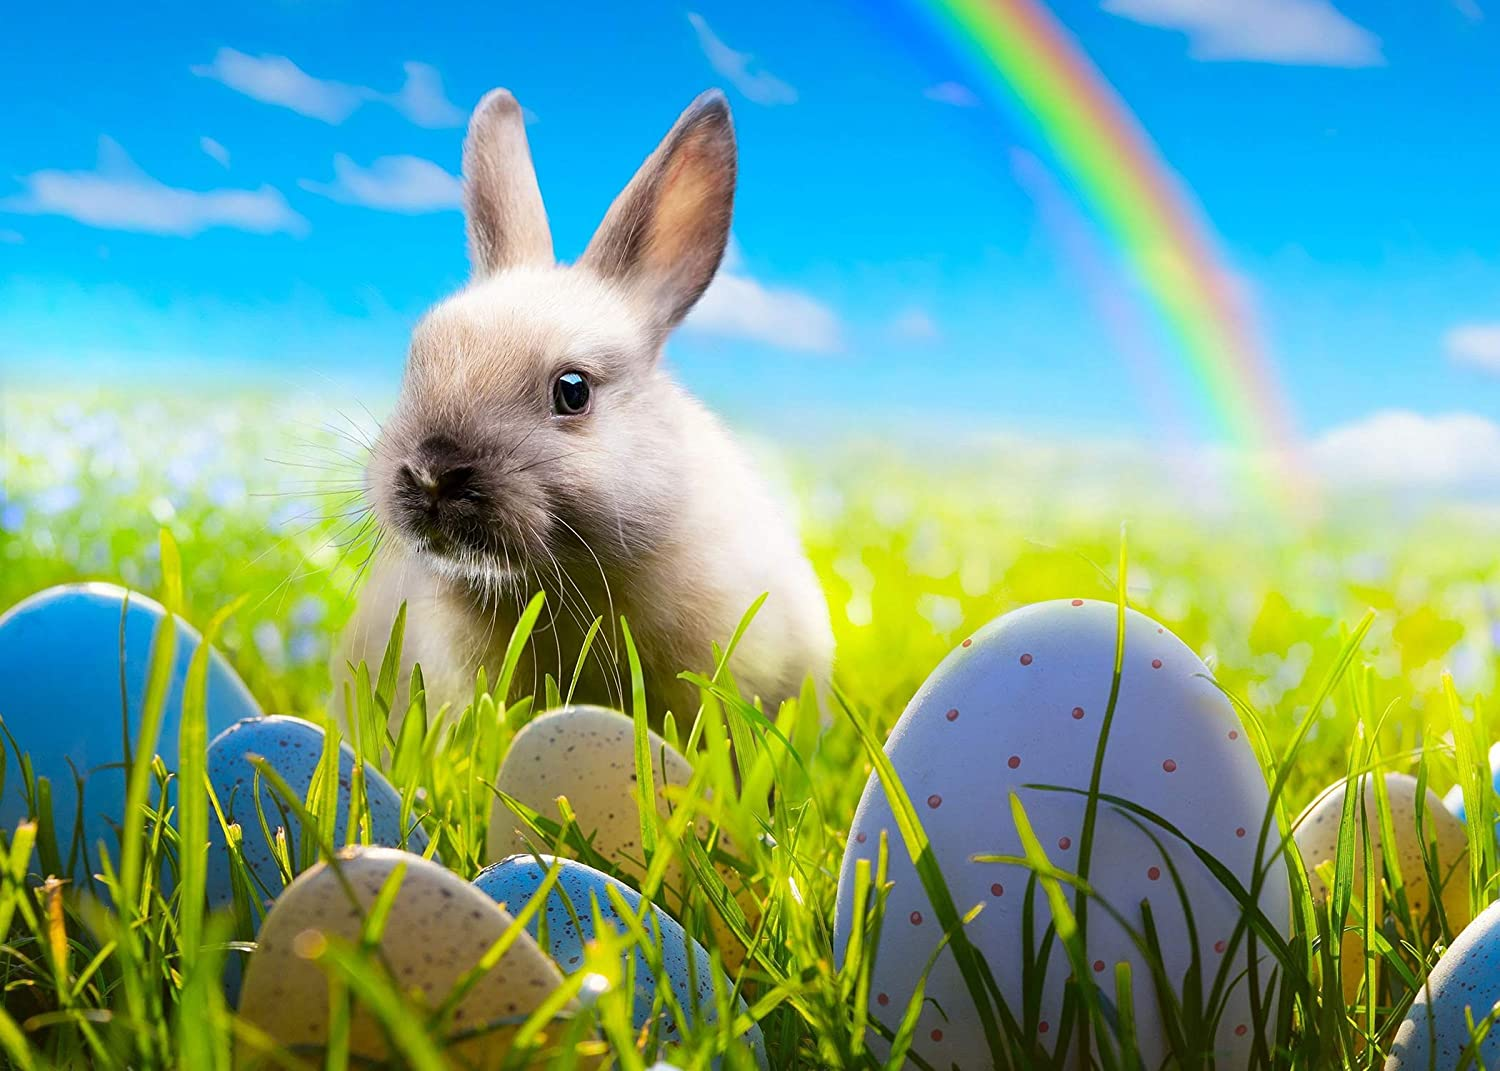 Happy Easter Backdrop 10x7ft Colorful Eggs Rabbit Rainbow Blue Sky Background Cake Table Banner Photo Studio Props LSGE1822